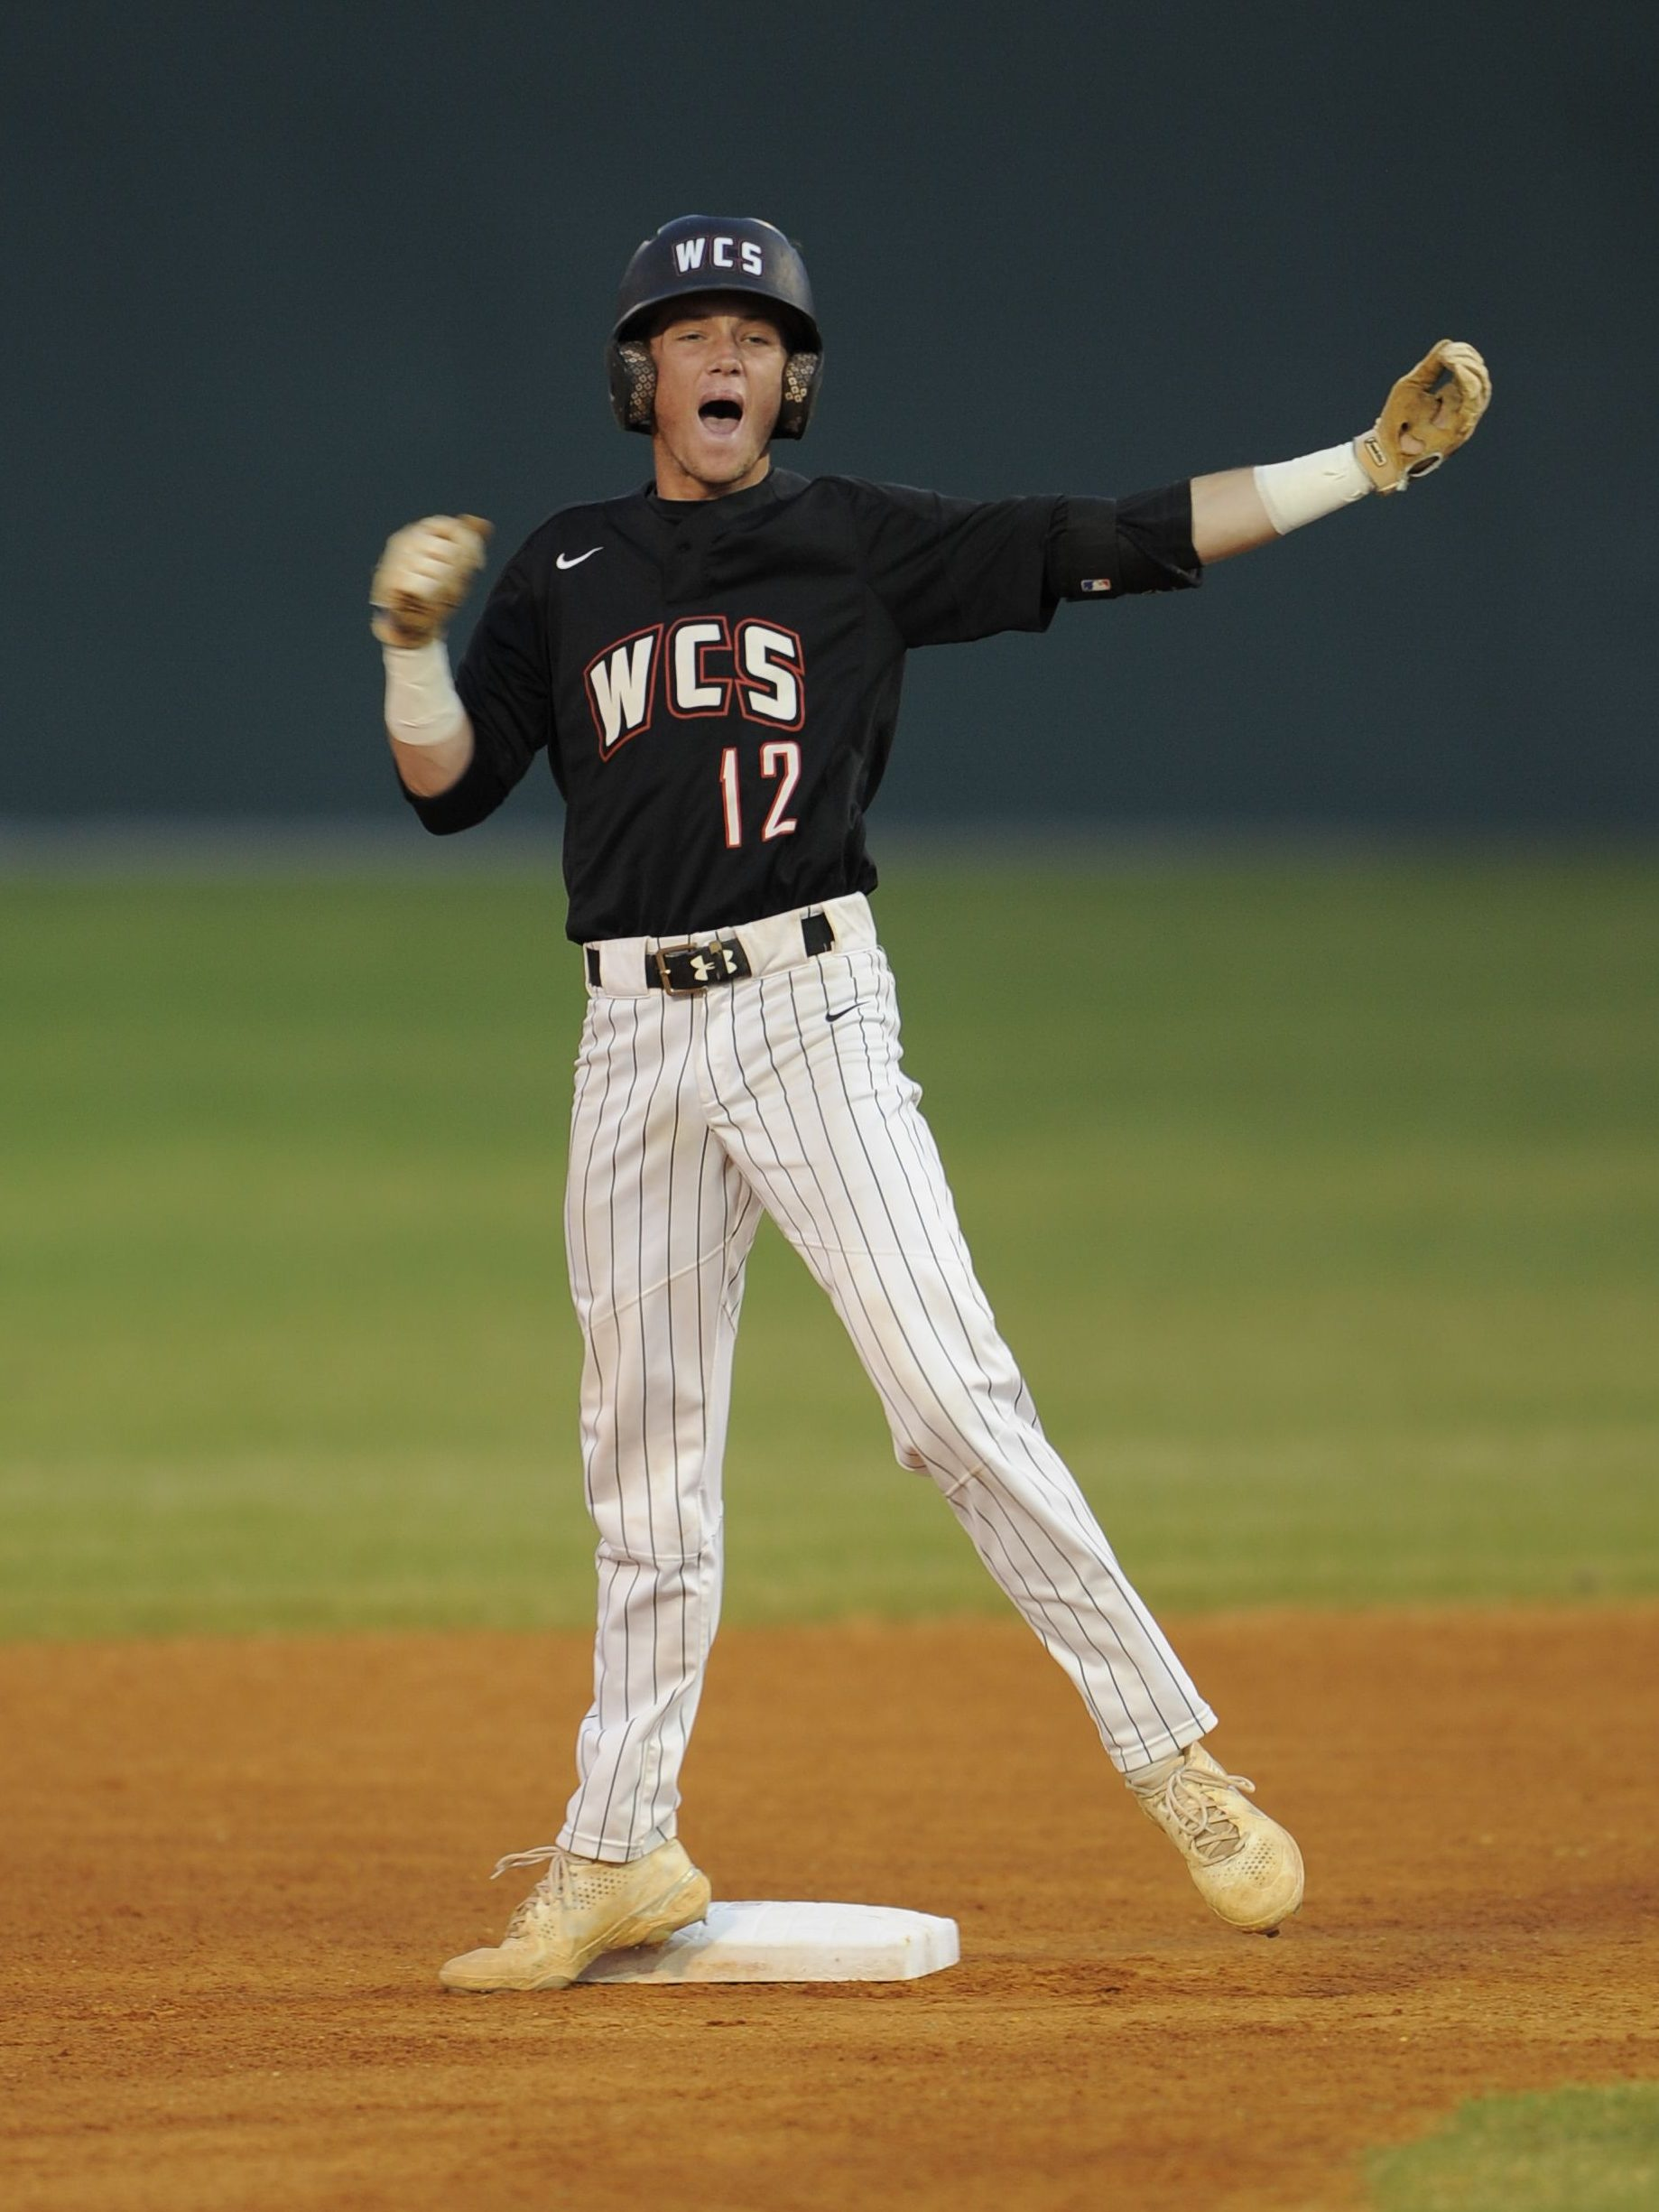 AHSAA STATE BASEBALL CHAMPIONSHIPS CLASS 2A GAME 1: Westbrook Christian 5, G.W. Long 0